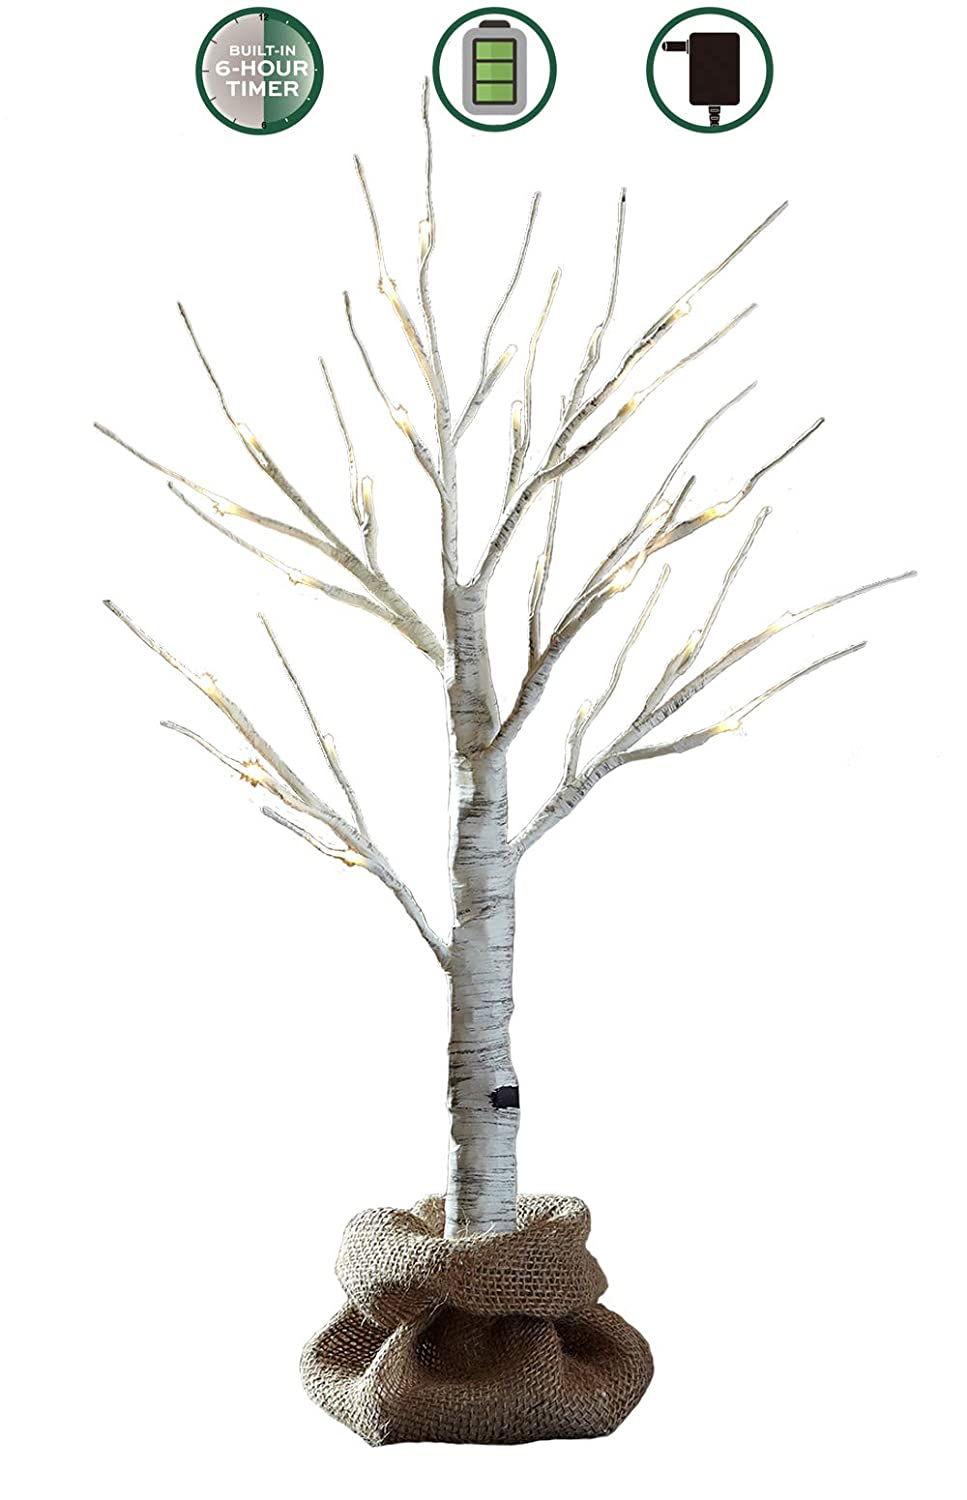 LOFTPLUS LED Birch Tree Hand-Painted Bonsai String Light 24 LED for Indoor Use Warm White Battery-Operated AC Adapter Burlap sack Included 24inch Tall